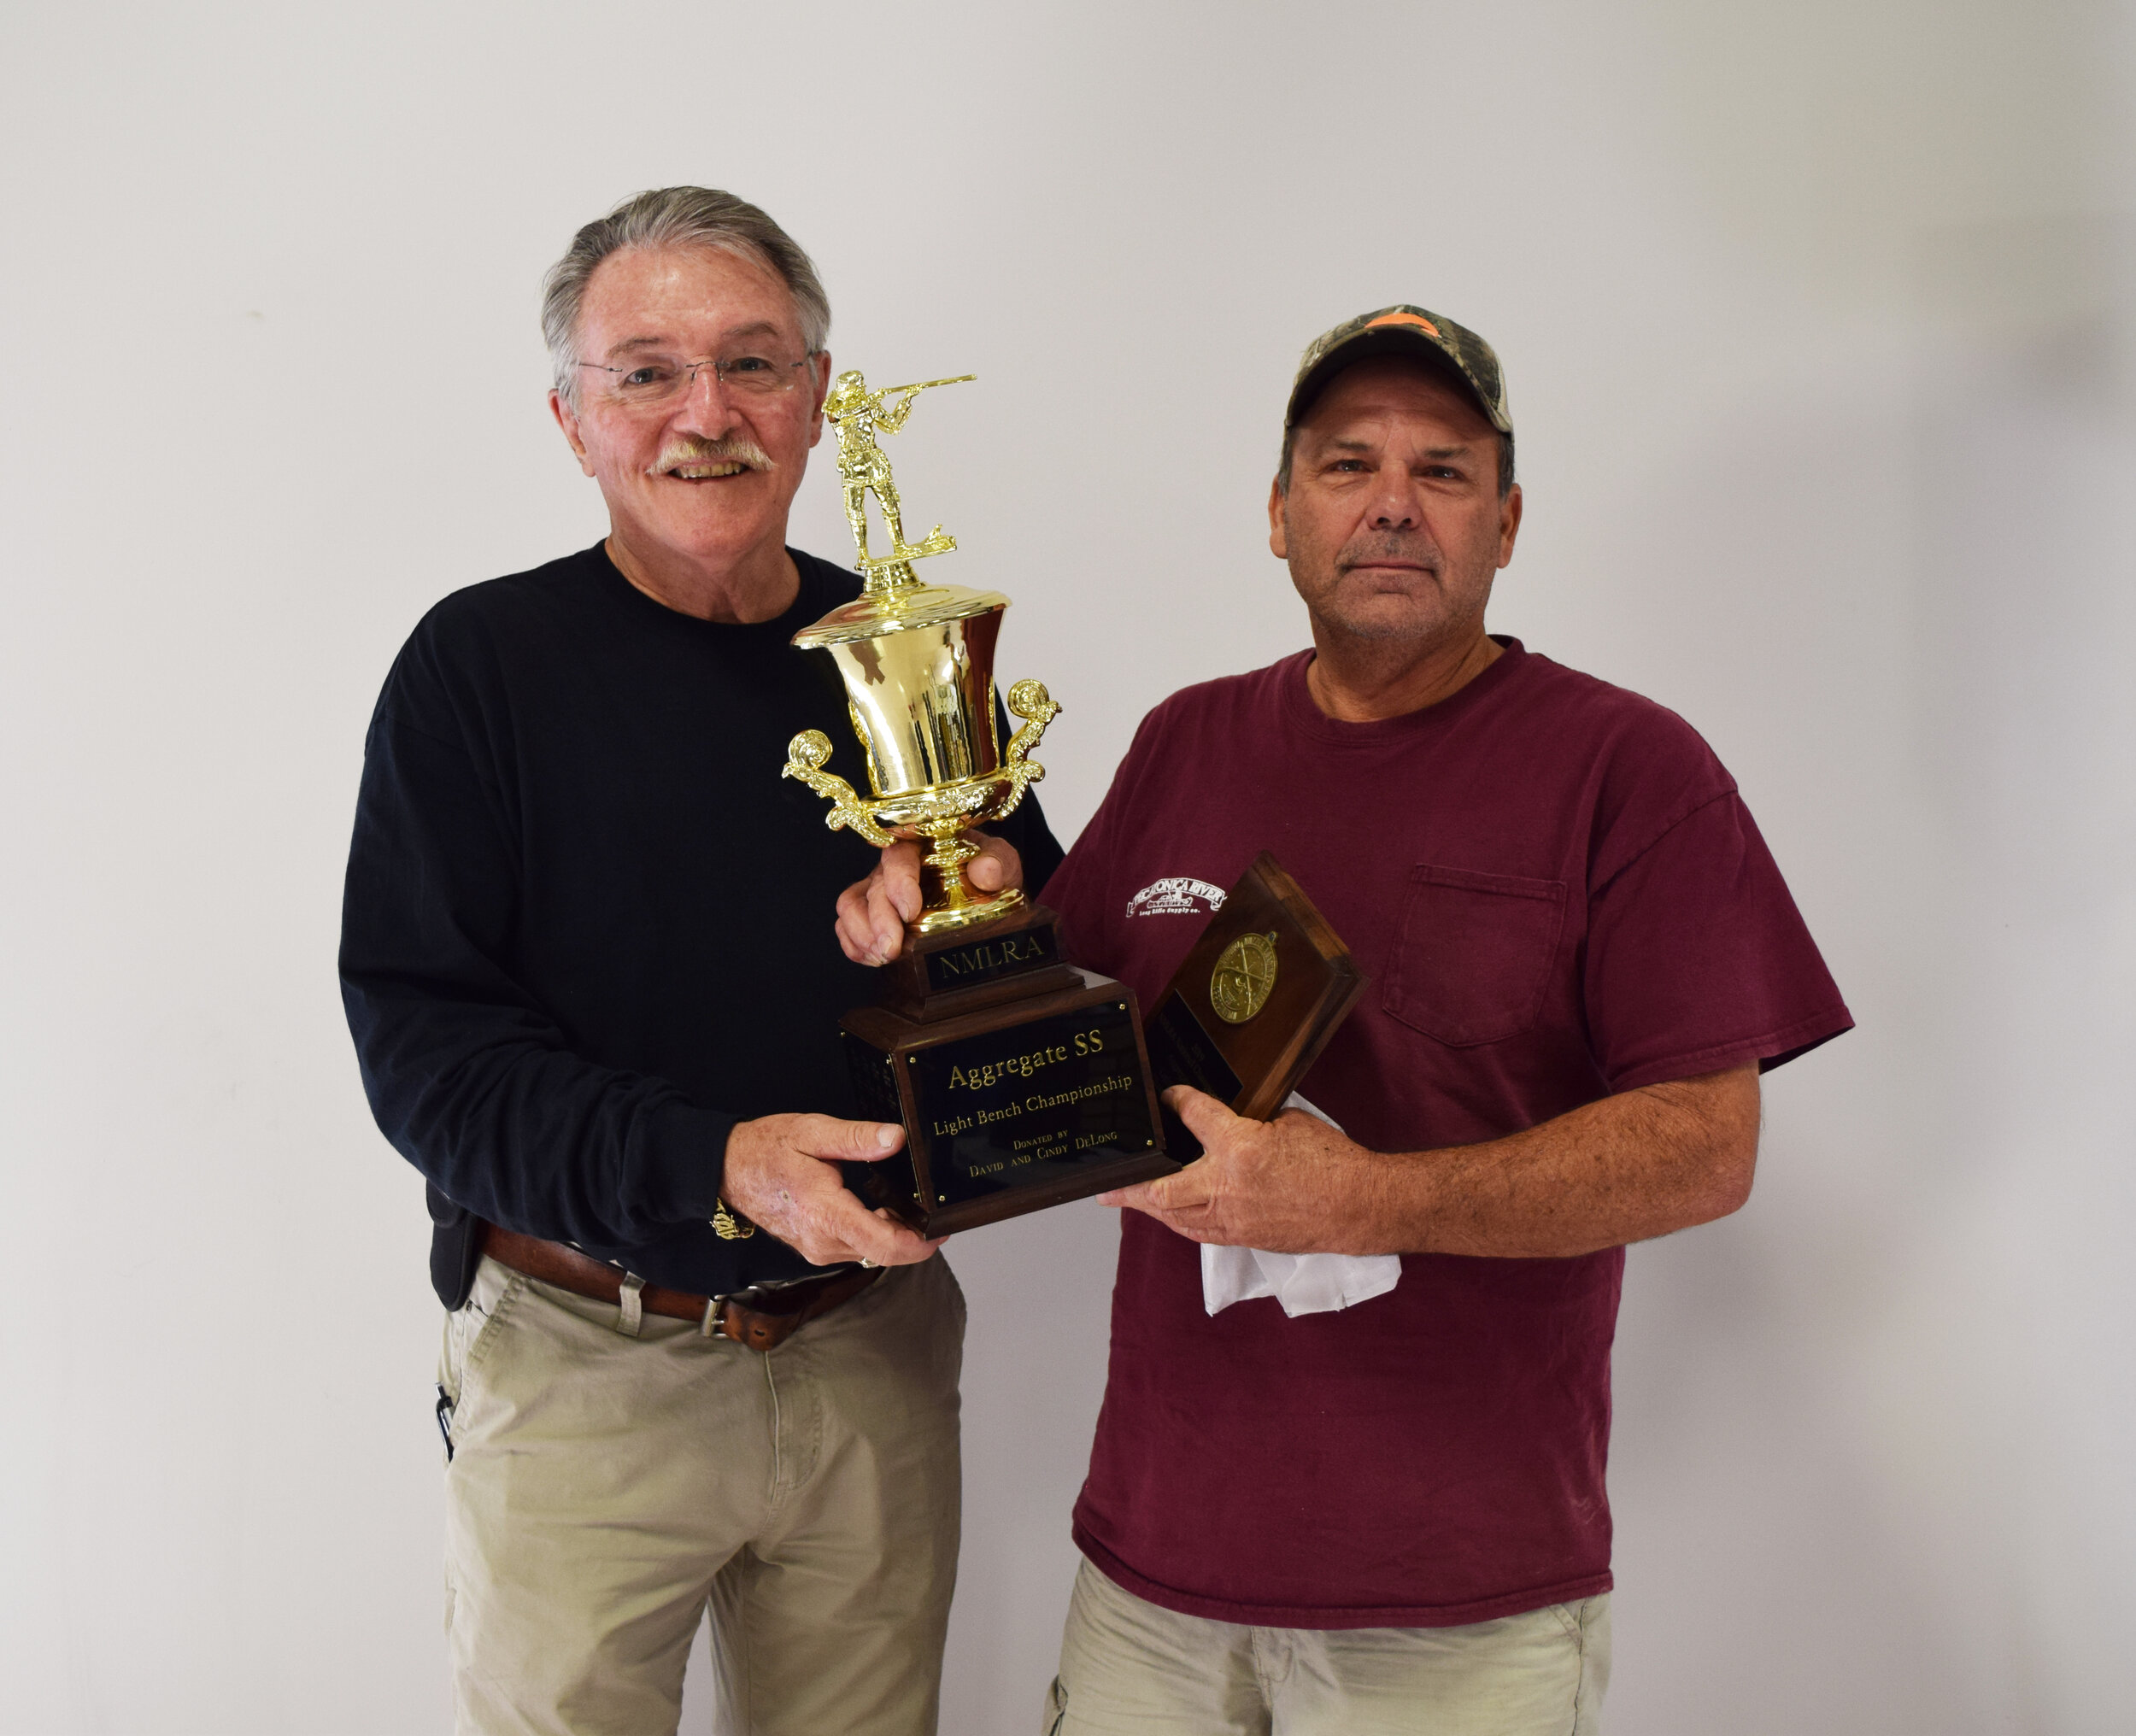 Dave Vanderbos - Aggregate SS - Light Bench Championship Winner with NMLRA President Brent Steele